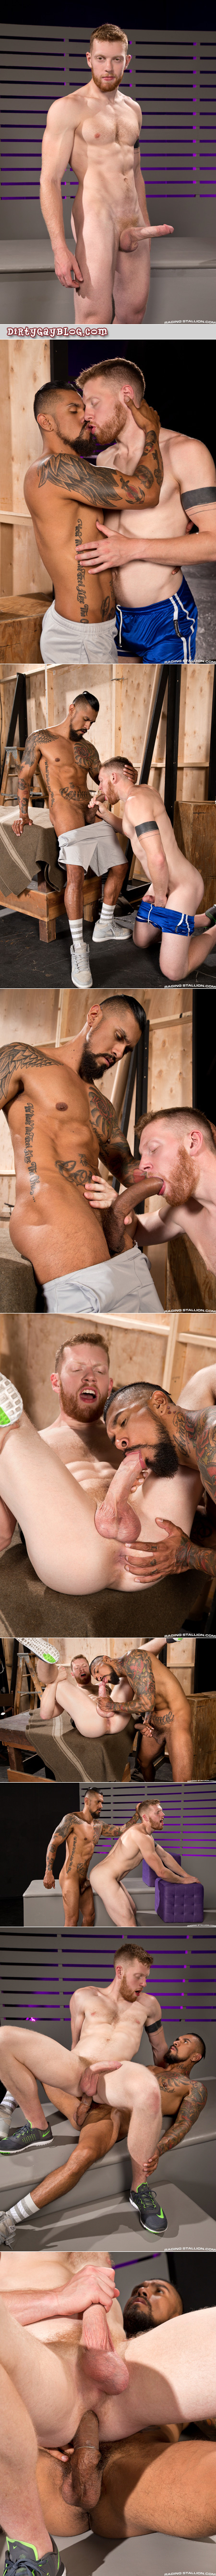 Fuzzy, pale redheaded bottom with a big dick getting fucked by a Latino muscleman with an enormous uncut dick.